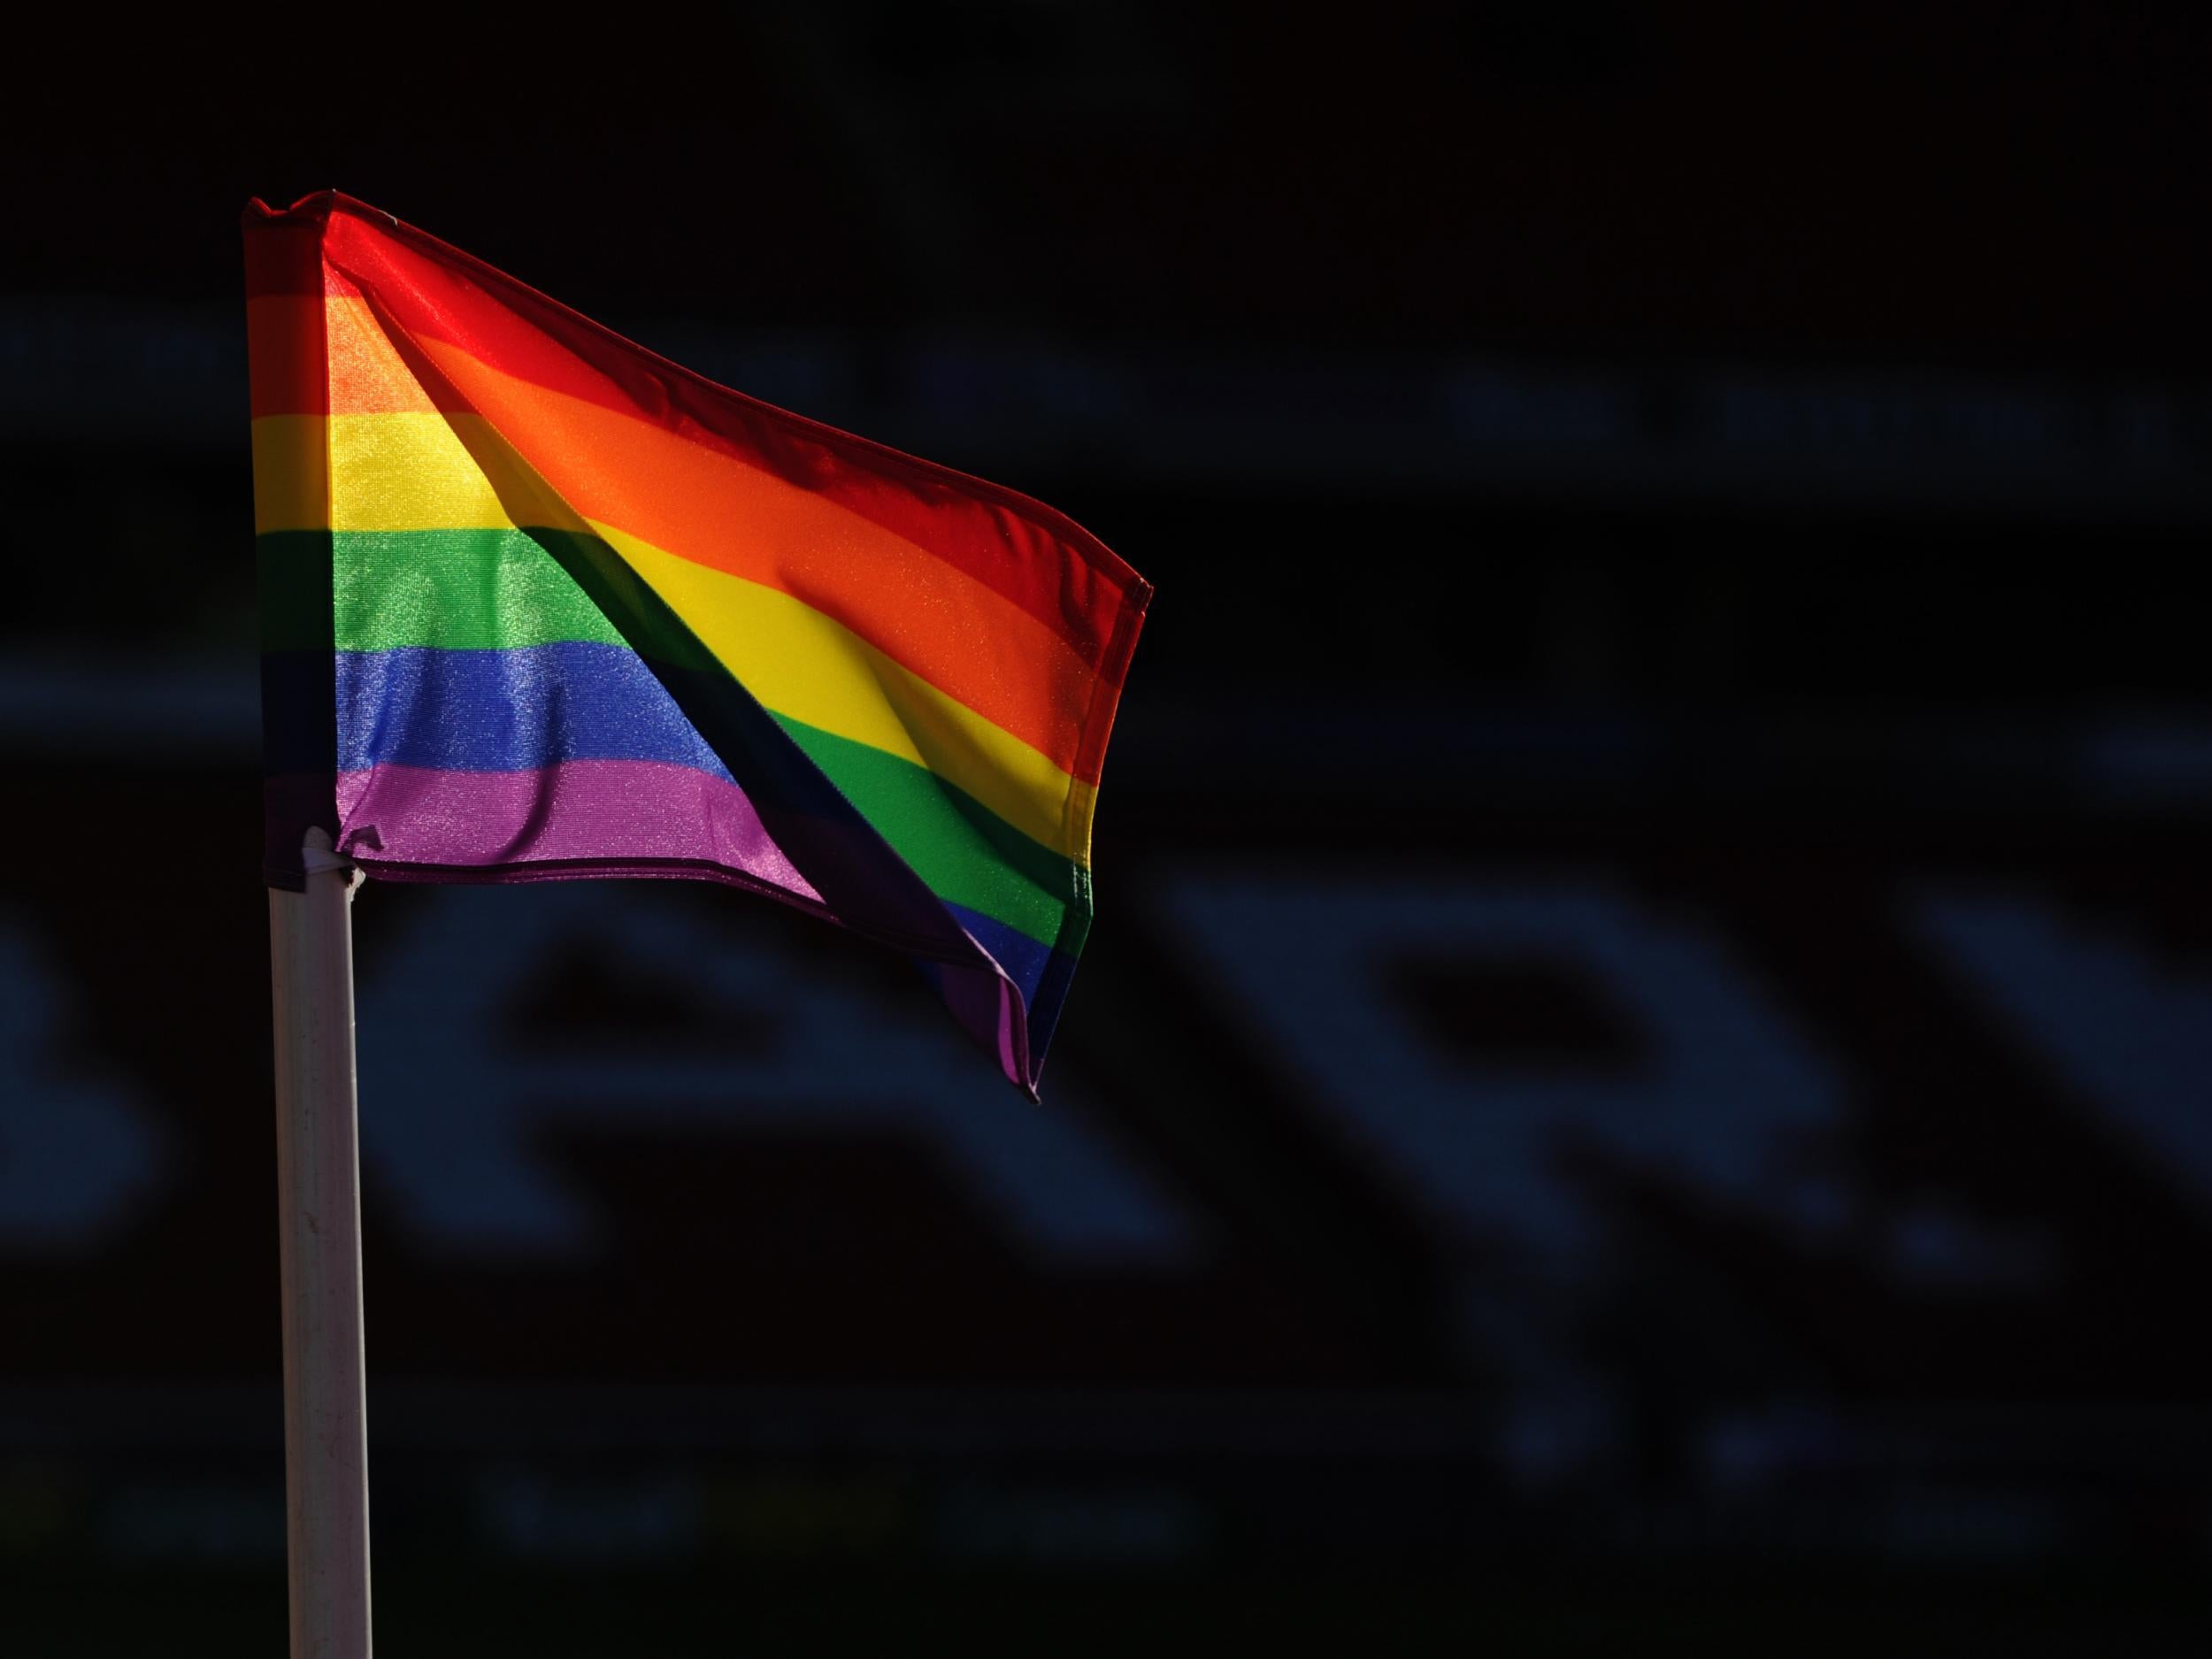 Fans at Russia 2018 World Cup will be allowed to fly rainbow flags